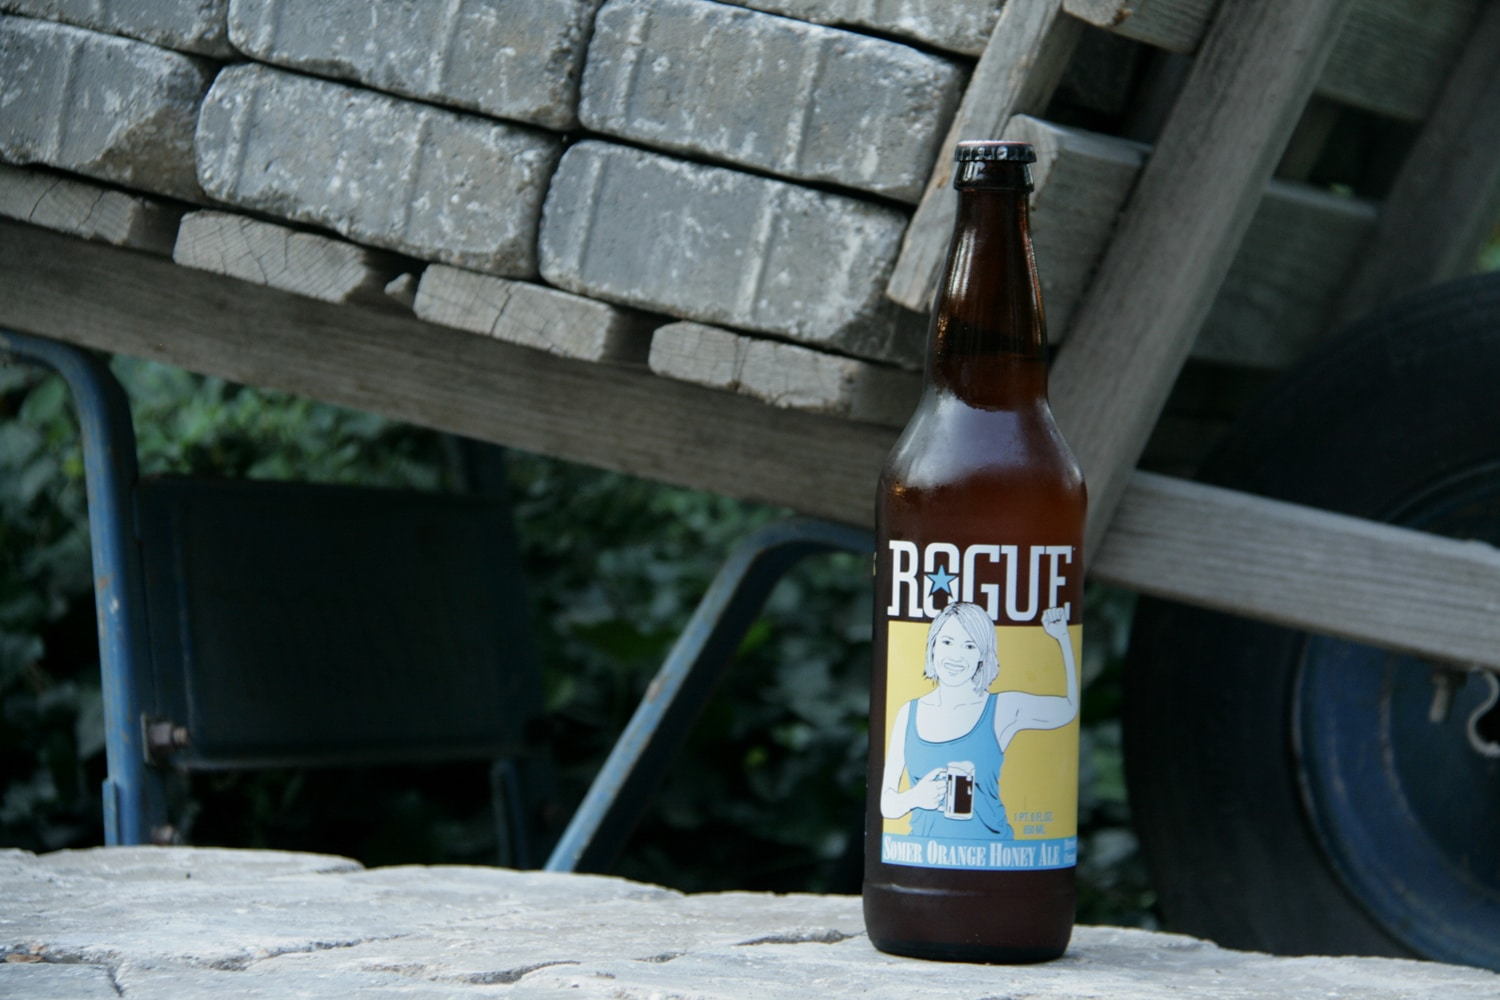 Select Rogue Orange Somer beer for the season.